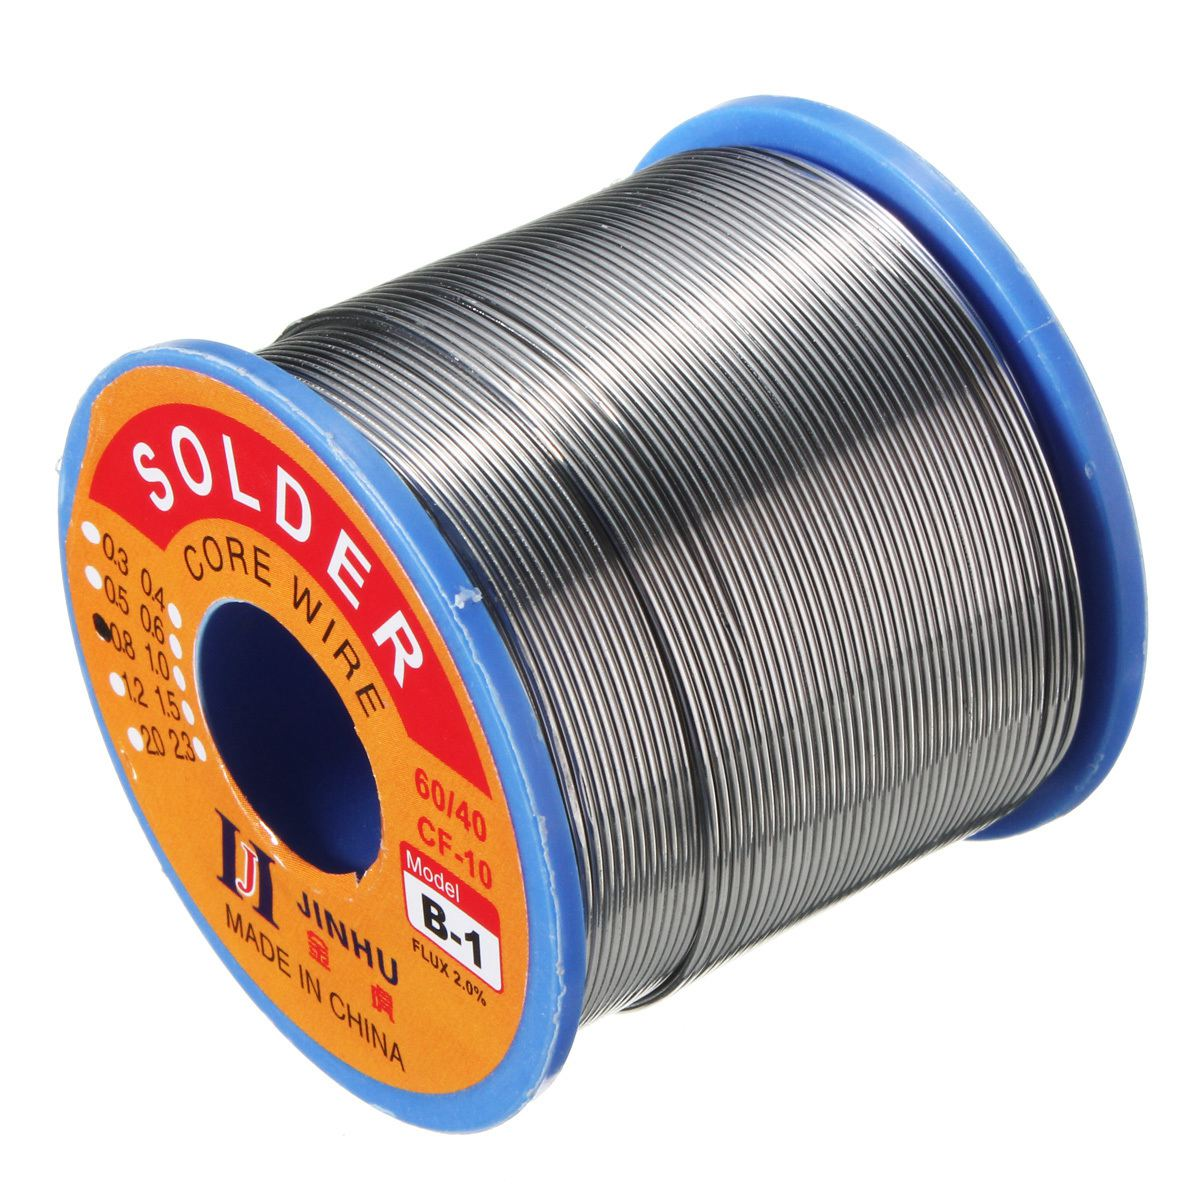 500g 60/40 Tin lead Solder Wire Rosin Core Soldering 2% Flux 0.7Mm 1 Reel